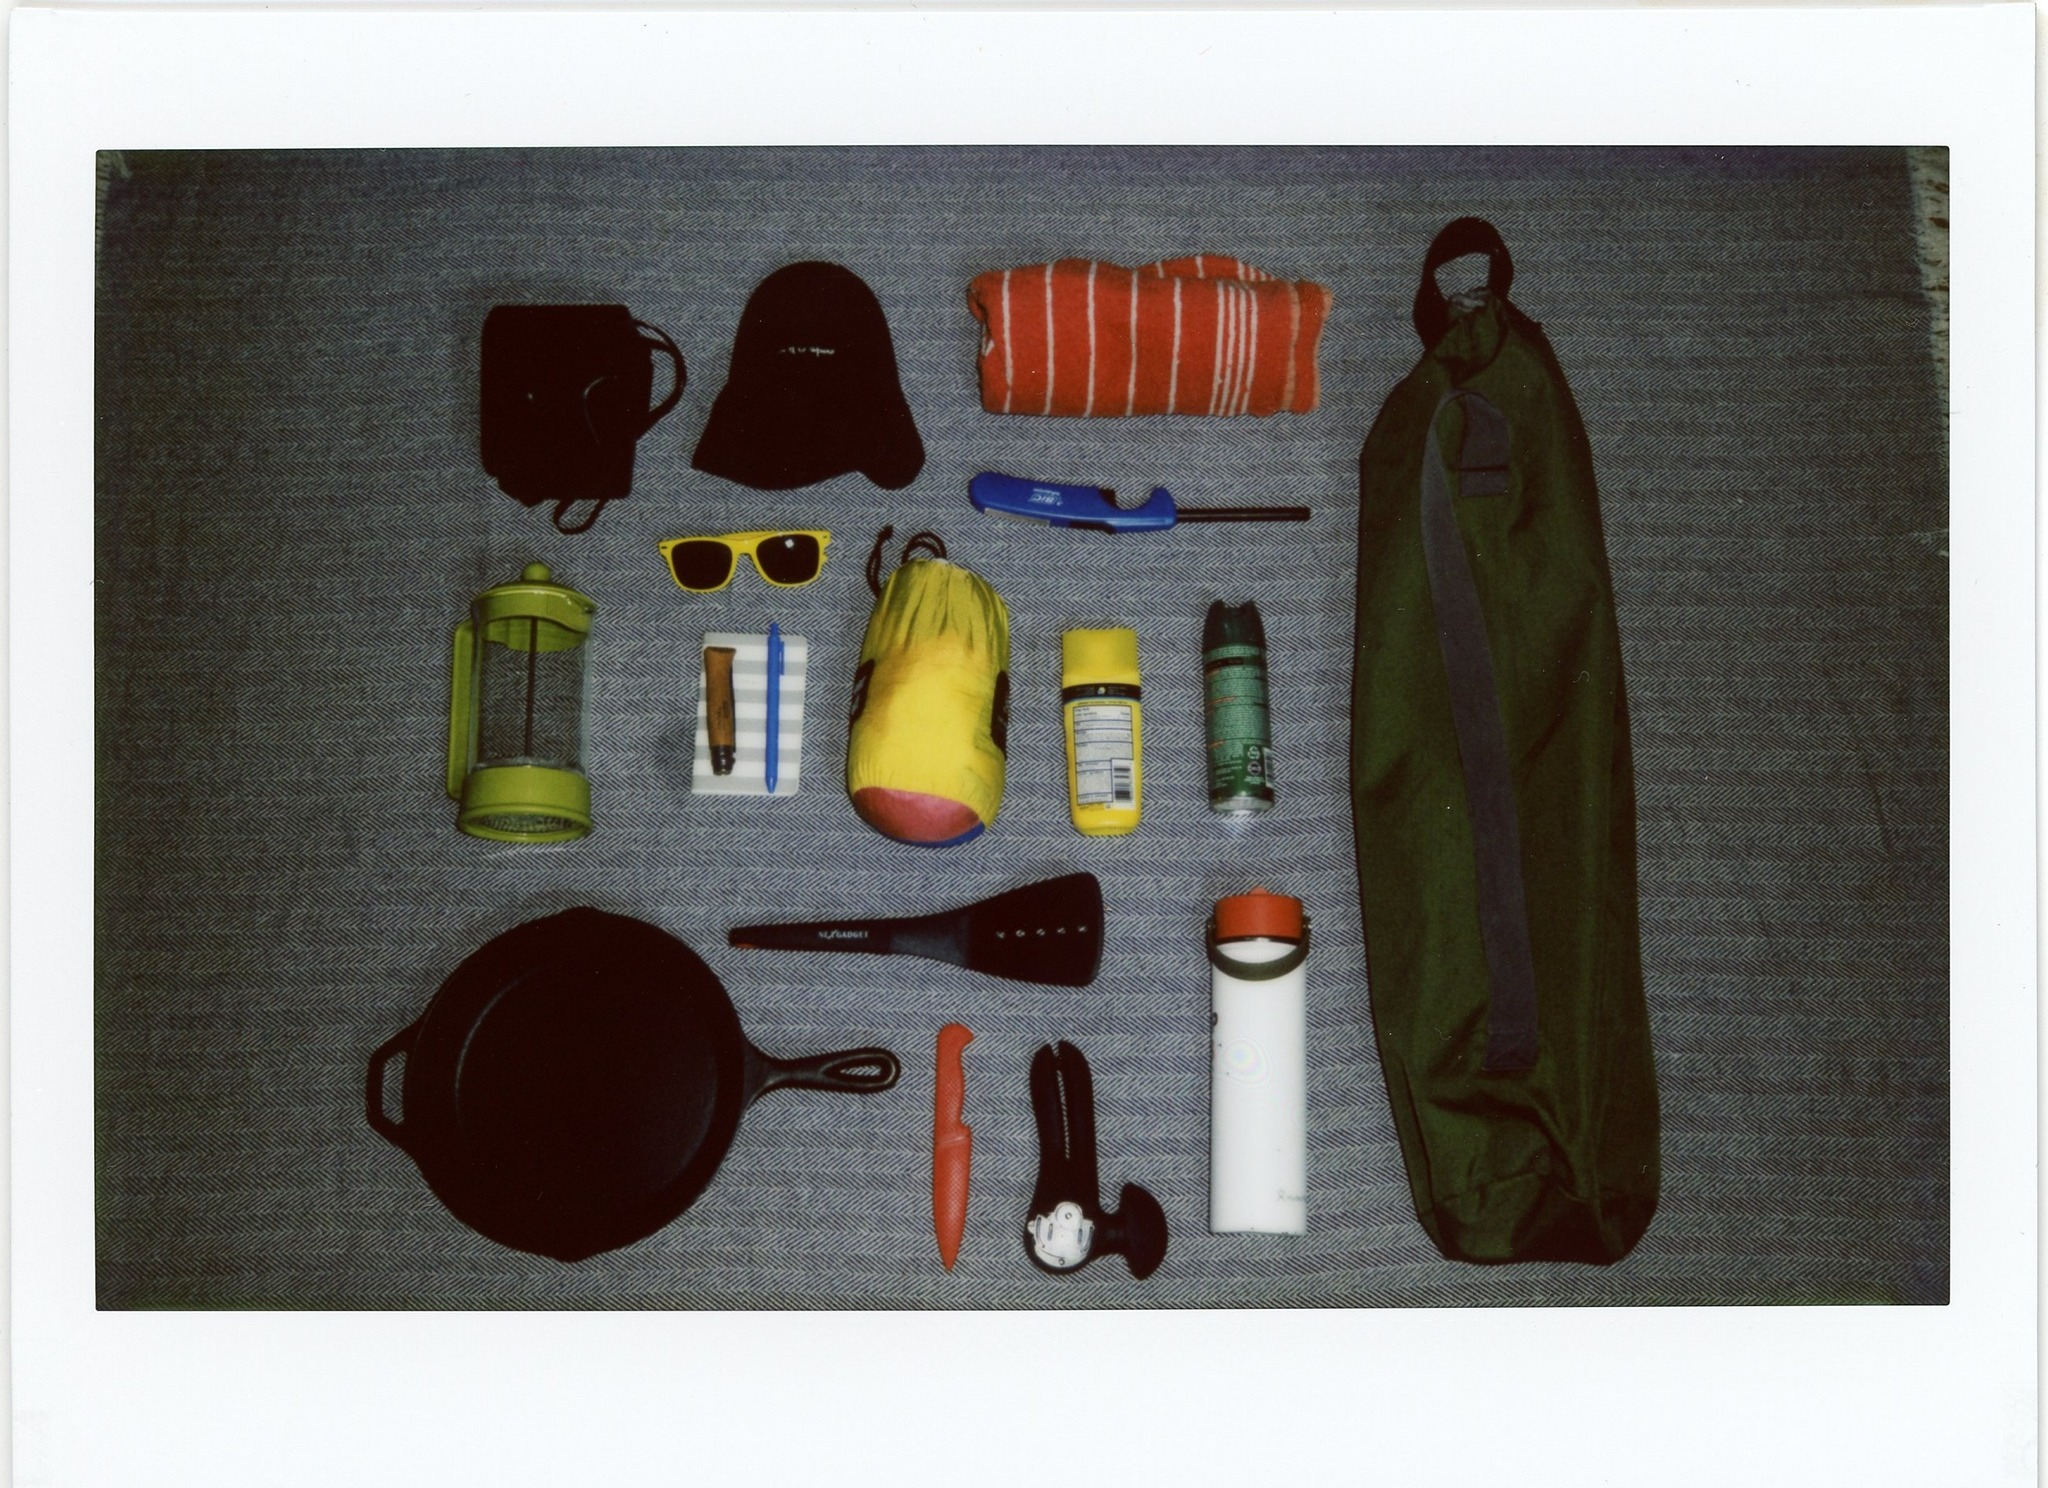 Car Camping 101 An Orientation For New Campers Life Kit Npr